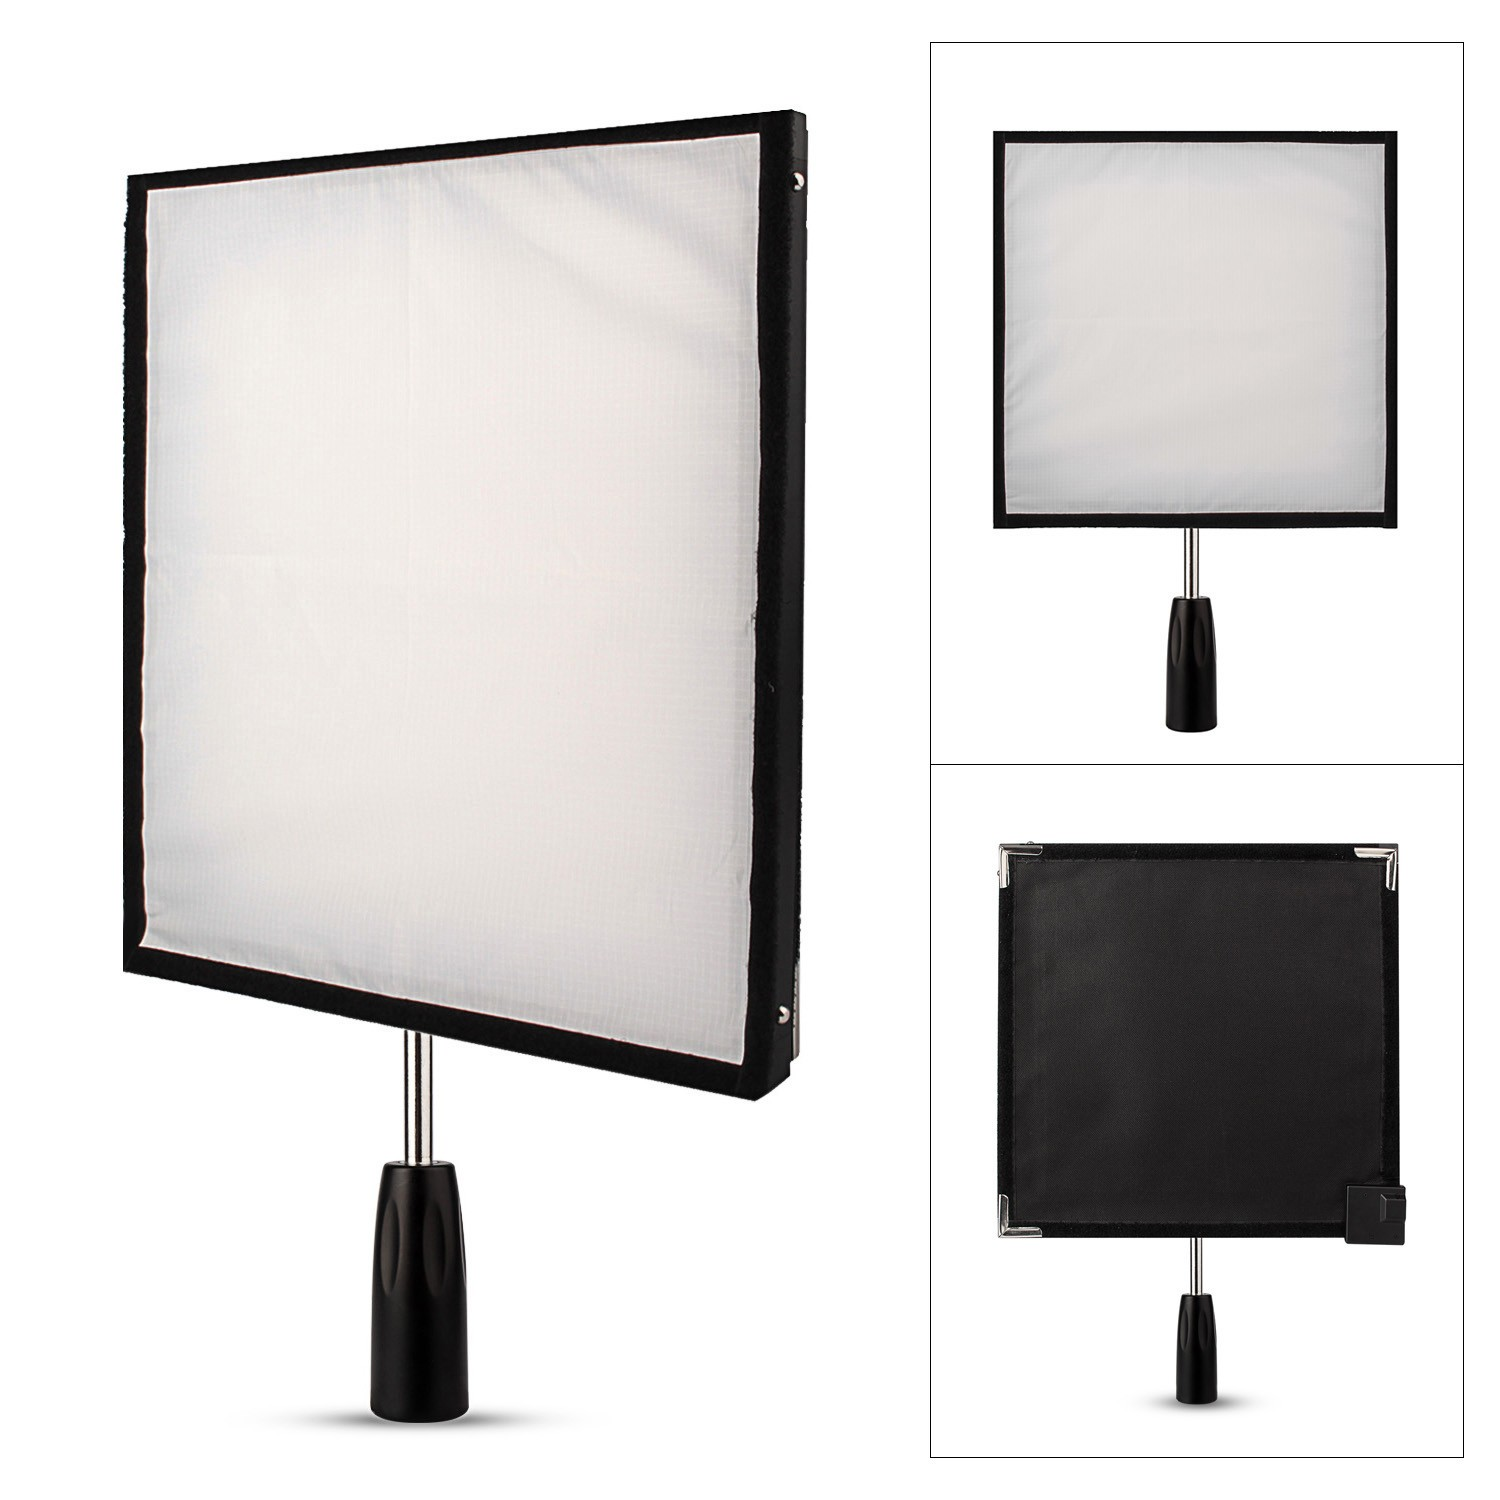 Travor FL-3030 30x30cm Flex Mat 5500K 256 LED Flexible Moldable LED Video Fabric Light Slim Ultralight Panel with 2.4G Remote travor flexible led video light fl 3060 size 30 60cm cri95 5500k with 2 4g remote control for video shooting